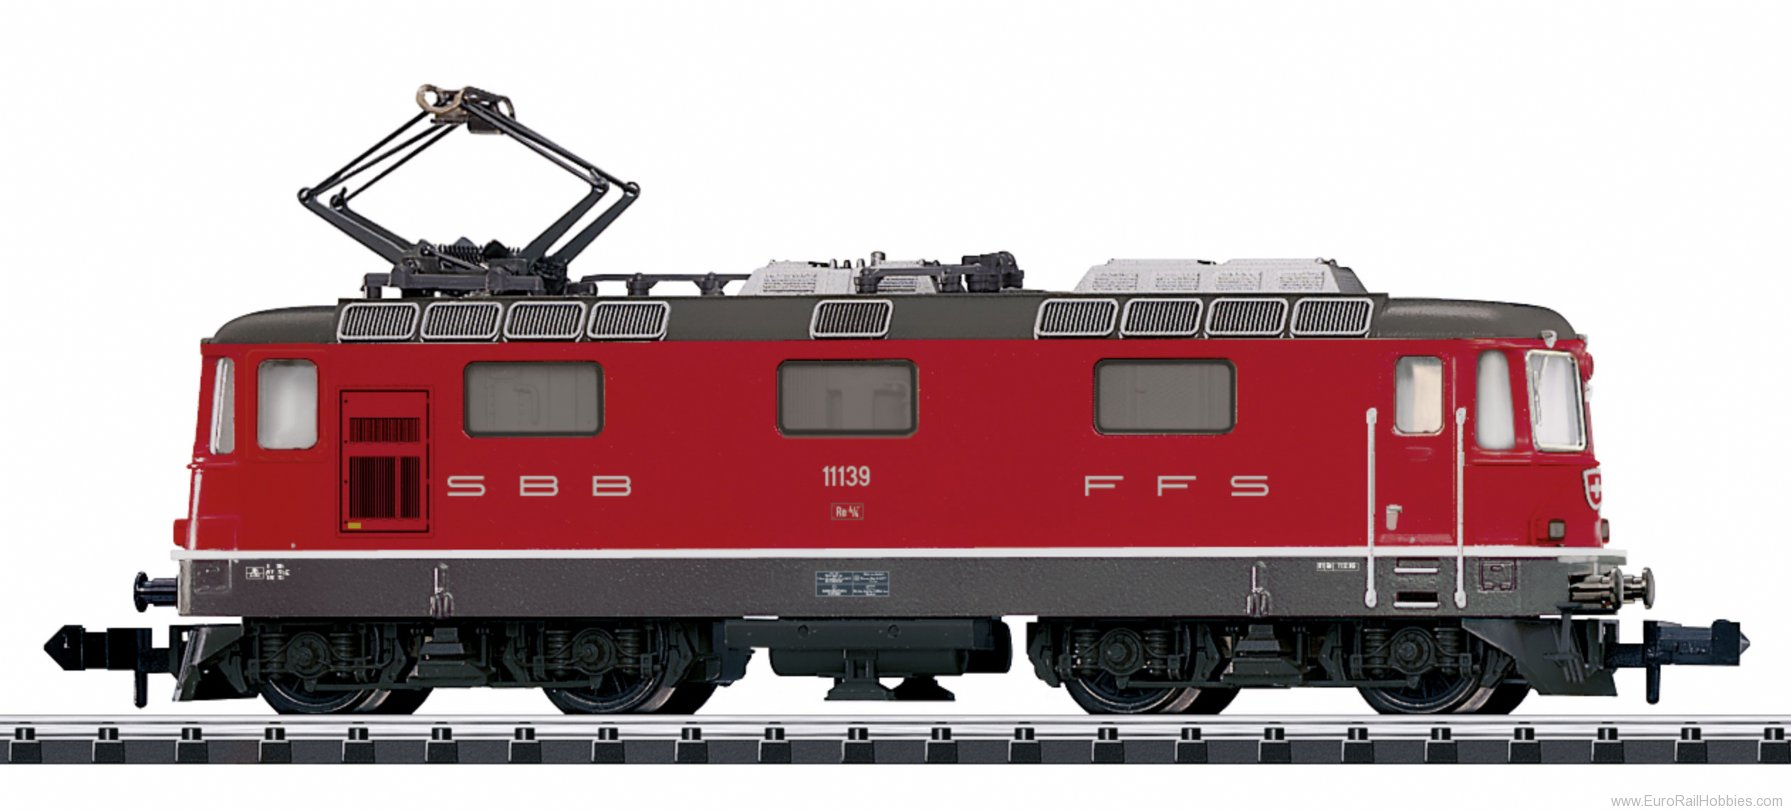 Minitrix 16882 SBB cl Re 4/4 II Electric Locomotive, DCC w/S